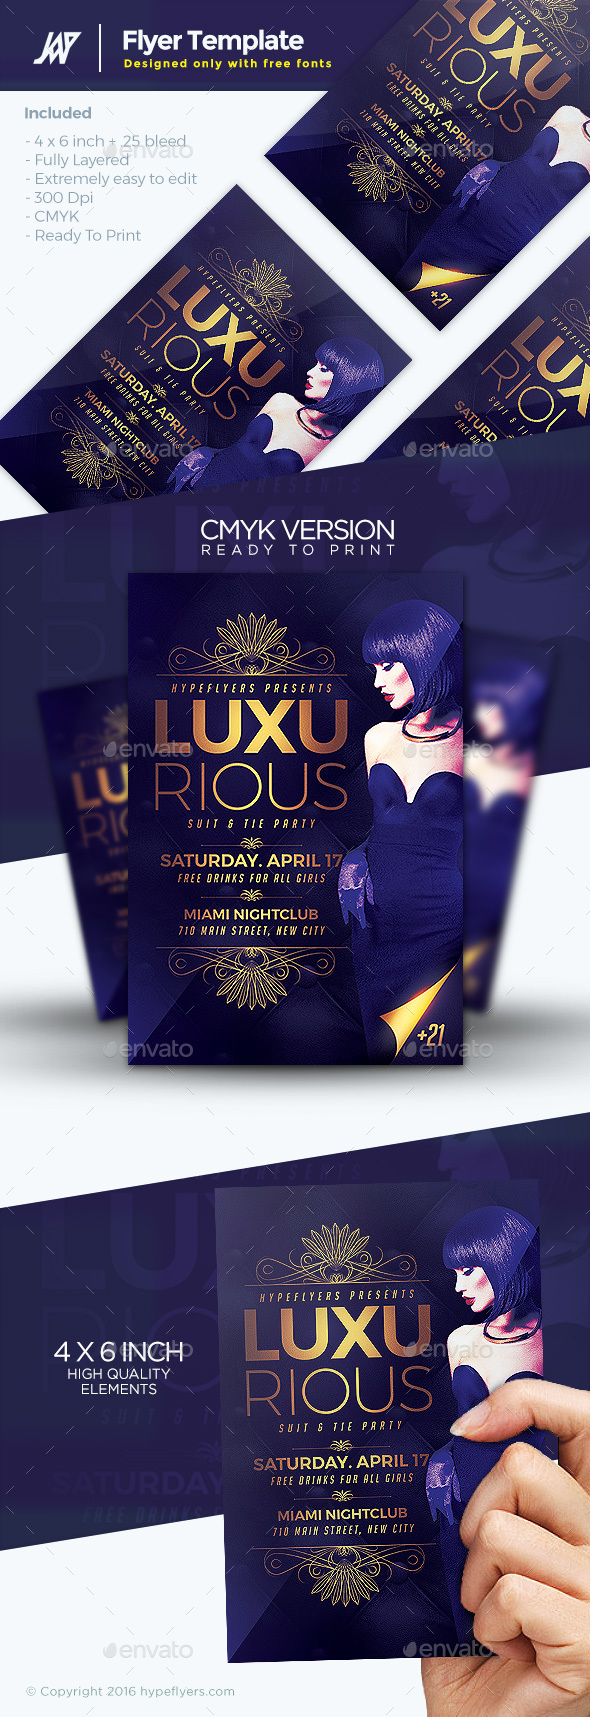 Luxurious Elegant Flyer Template By 1jaykey Graphicriver